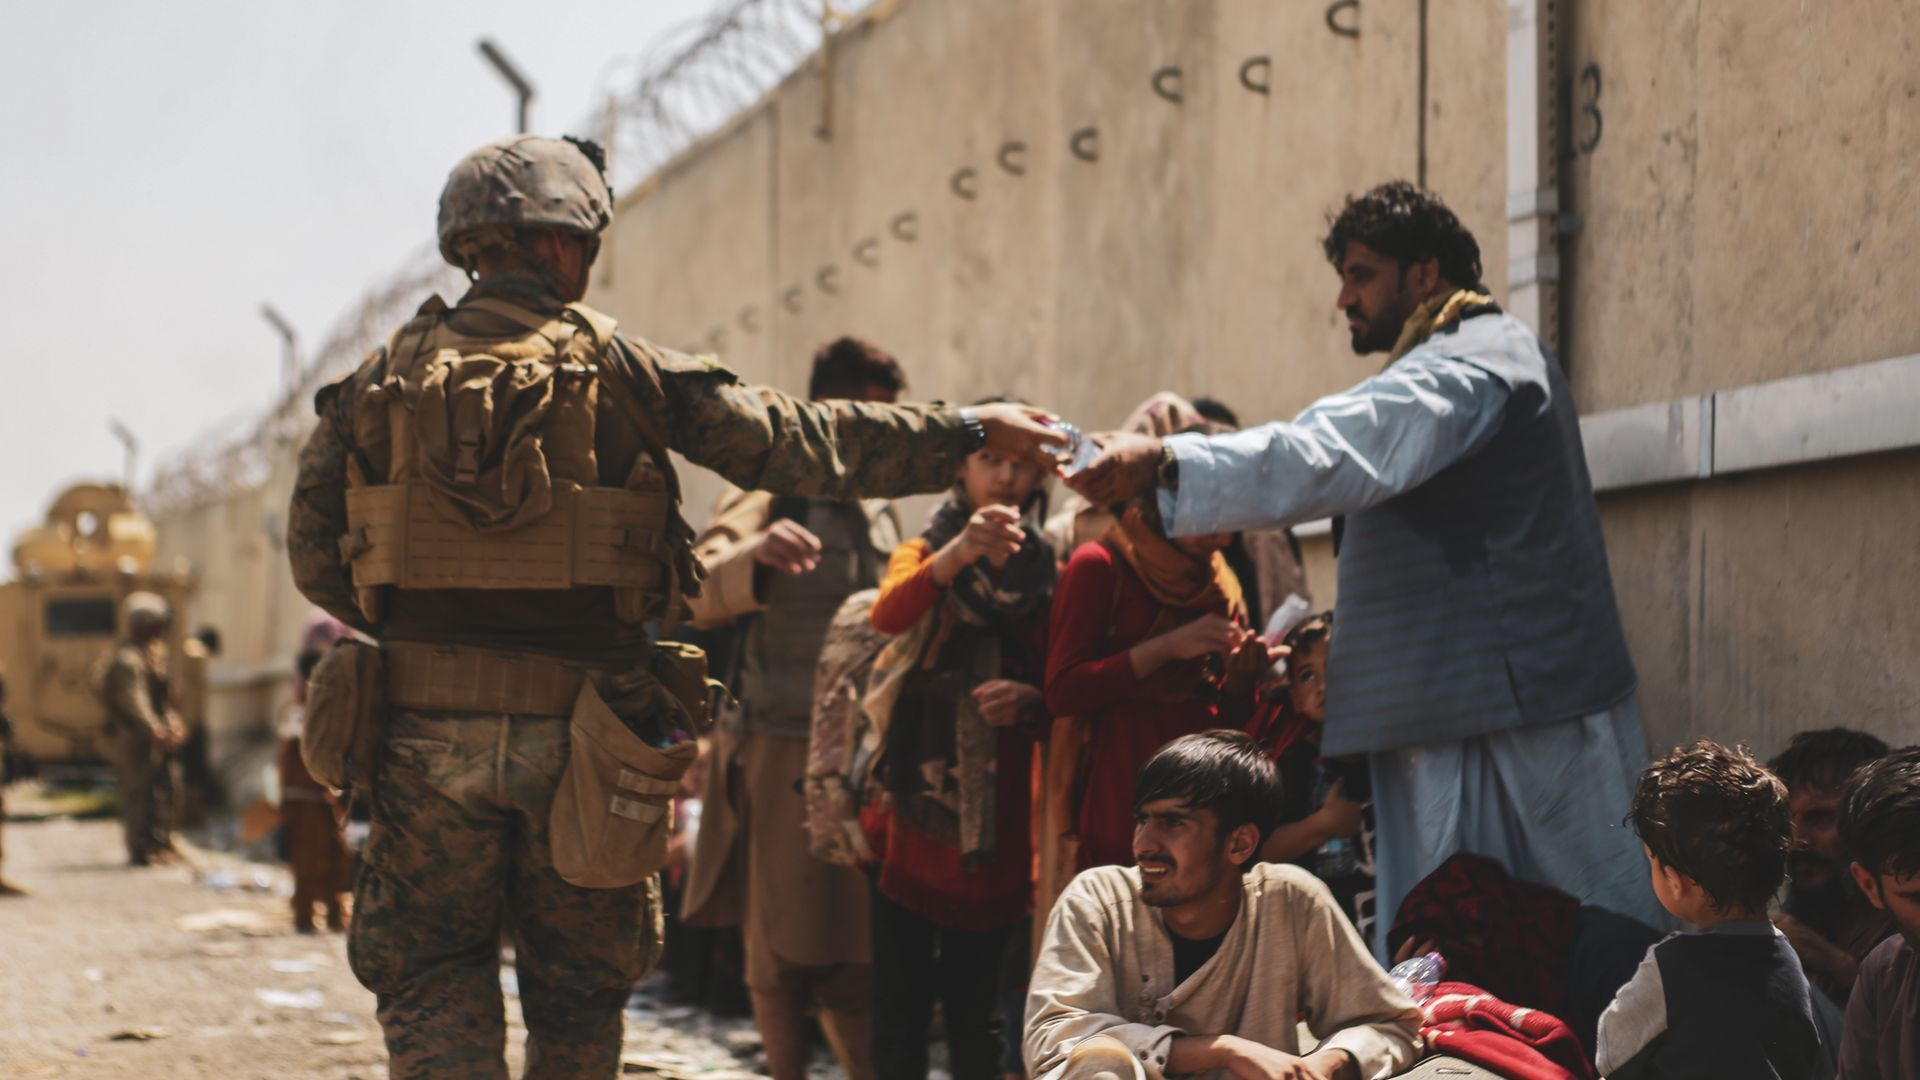 A U.S.  Marine passes out water to evacuees during the evacuation at Hamid Karzai International Airport. Photo: Isaiah Campbell/U.S. Marine Corps via Getty Images